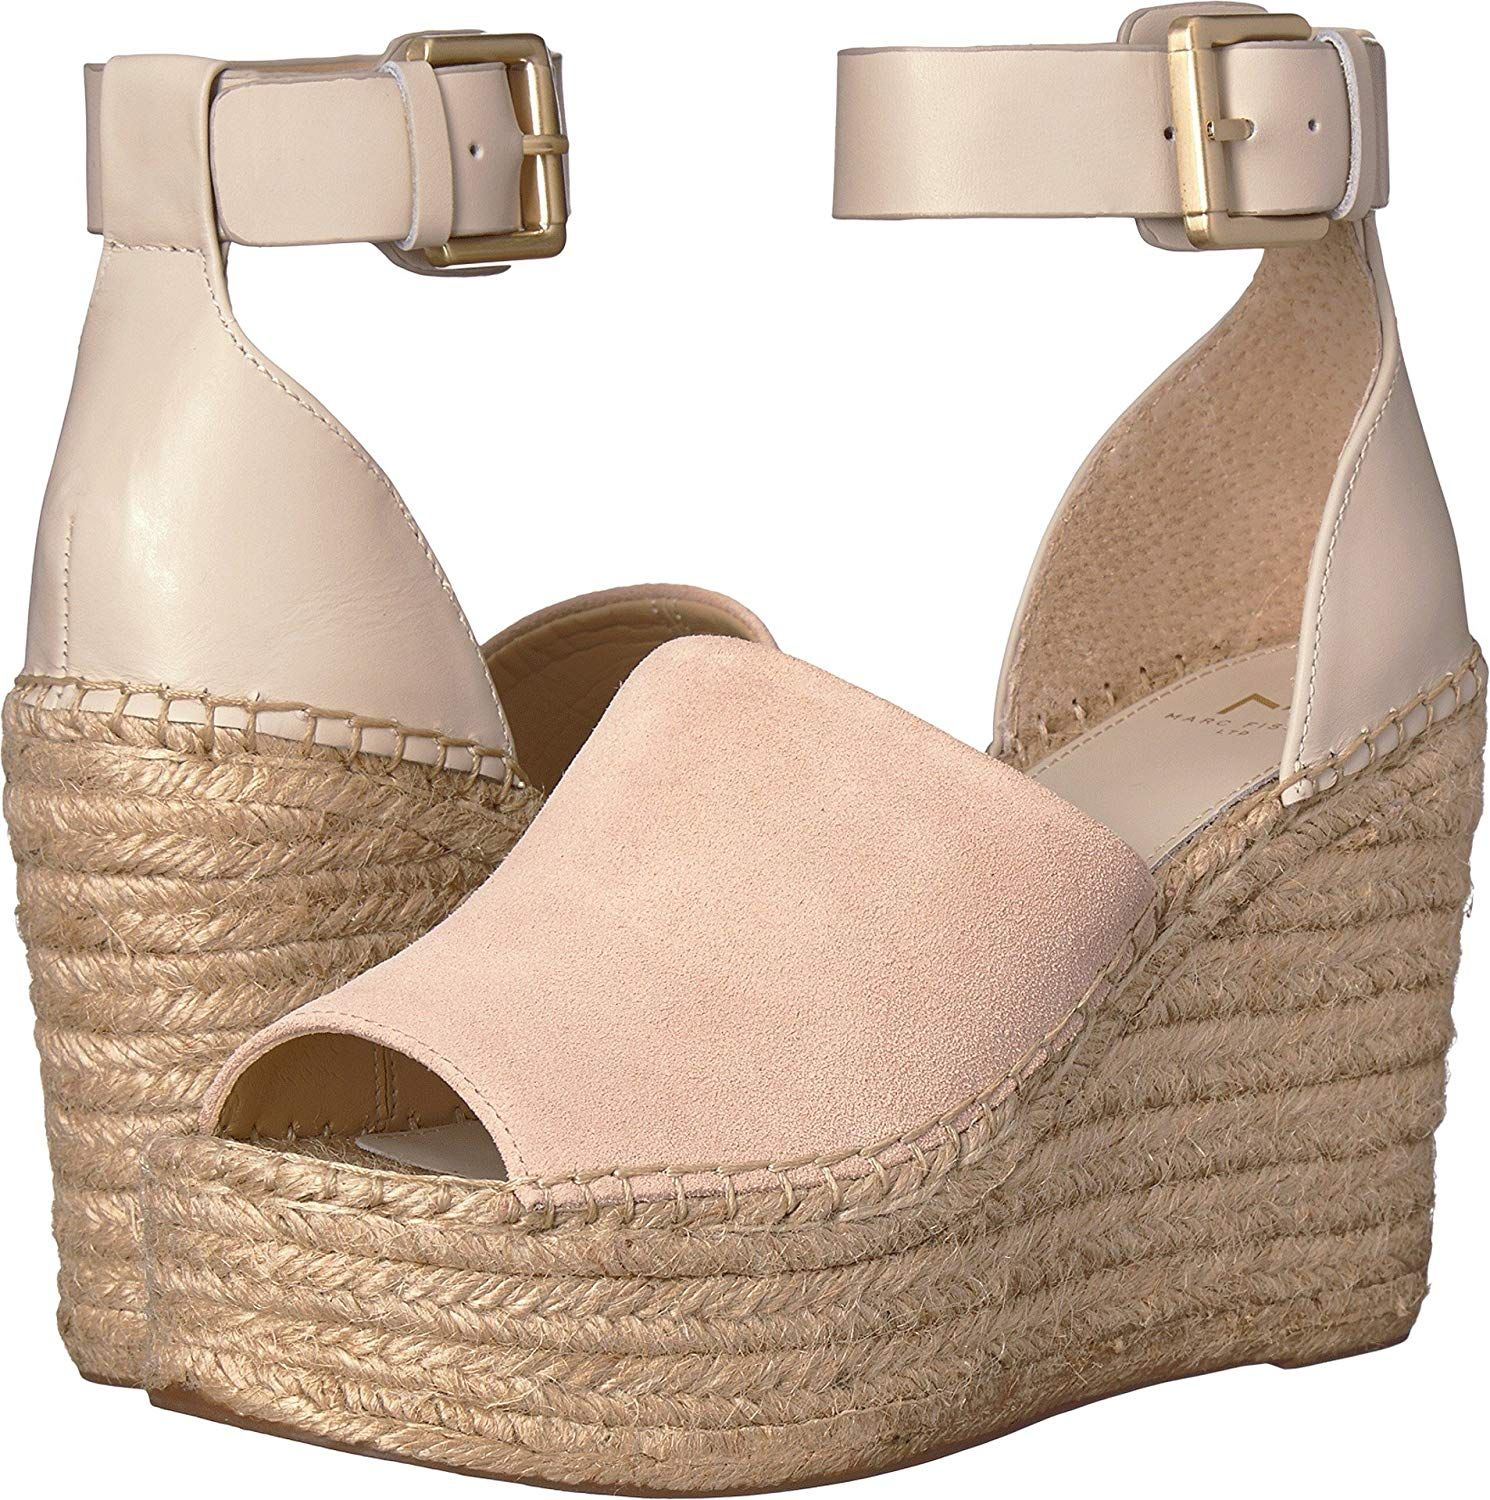 b7bc9b50b5 Marc Fisher LTD Womens Adalyn. Elevate your vintage-inspired style in the  stunning Marc